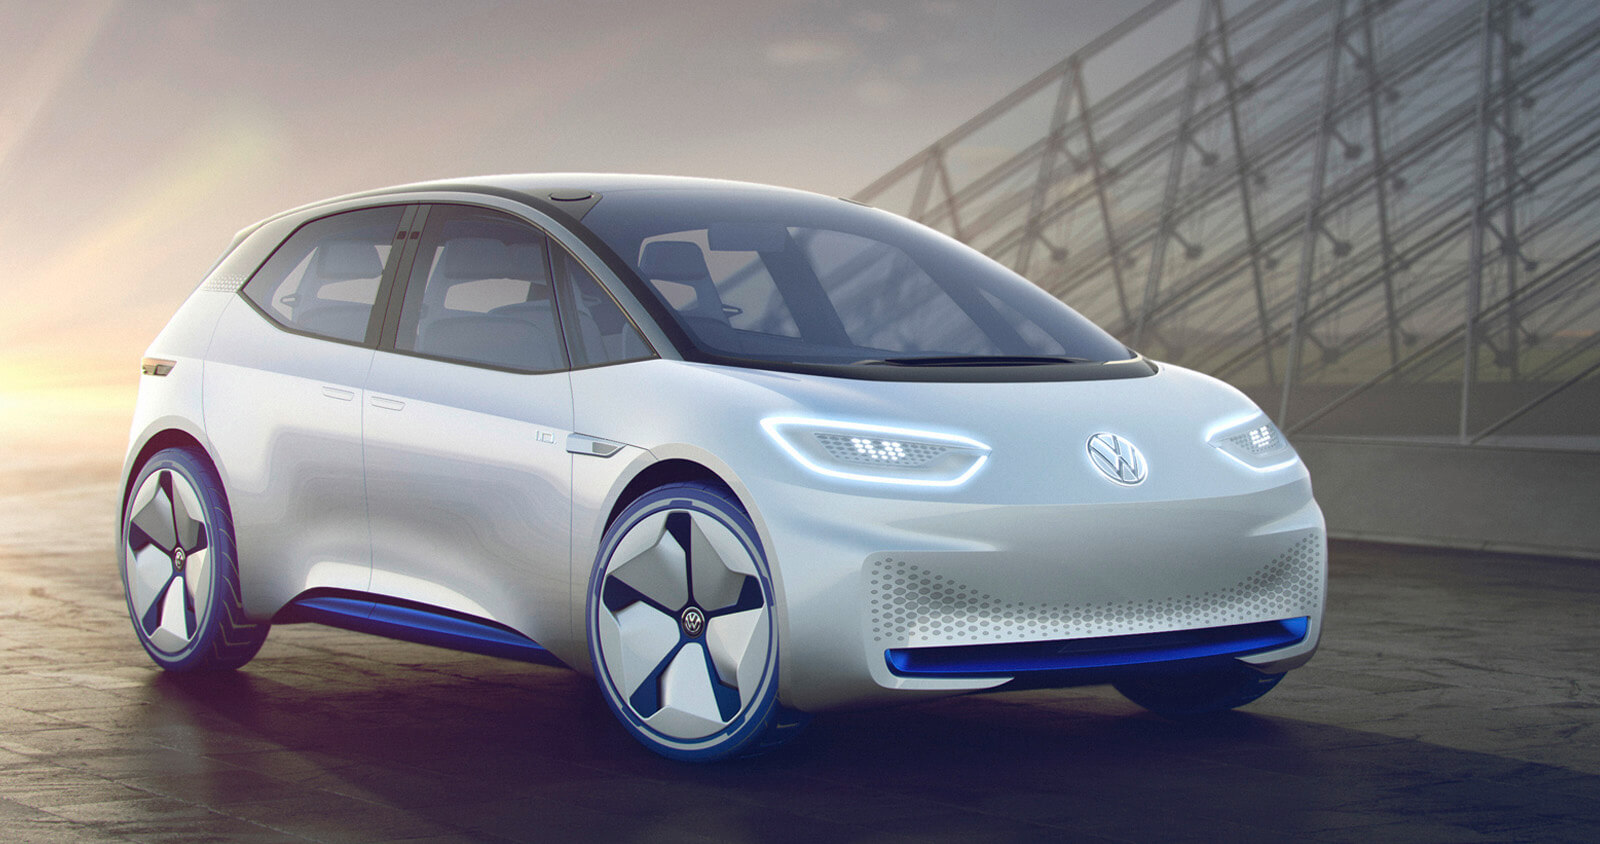 [Image: Volkswagen-ID-Neo-specifications-evchargeplus.jpg]